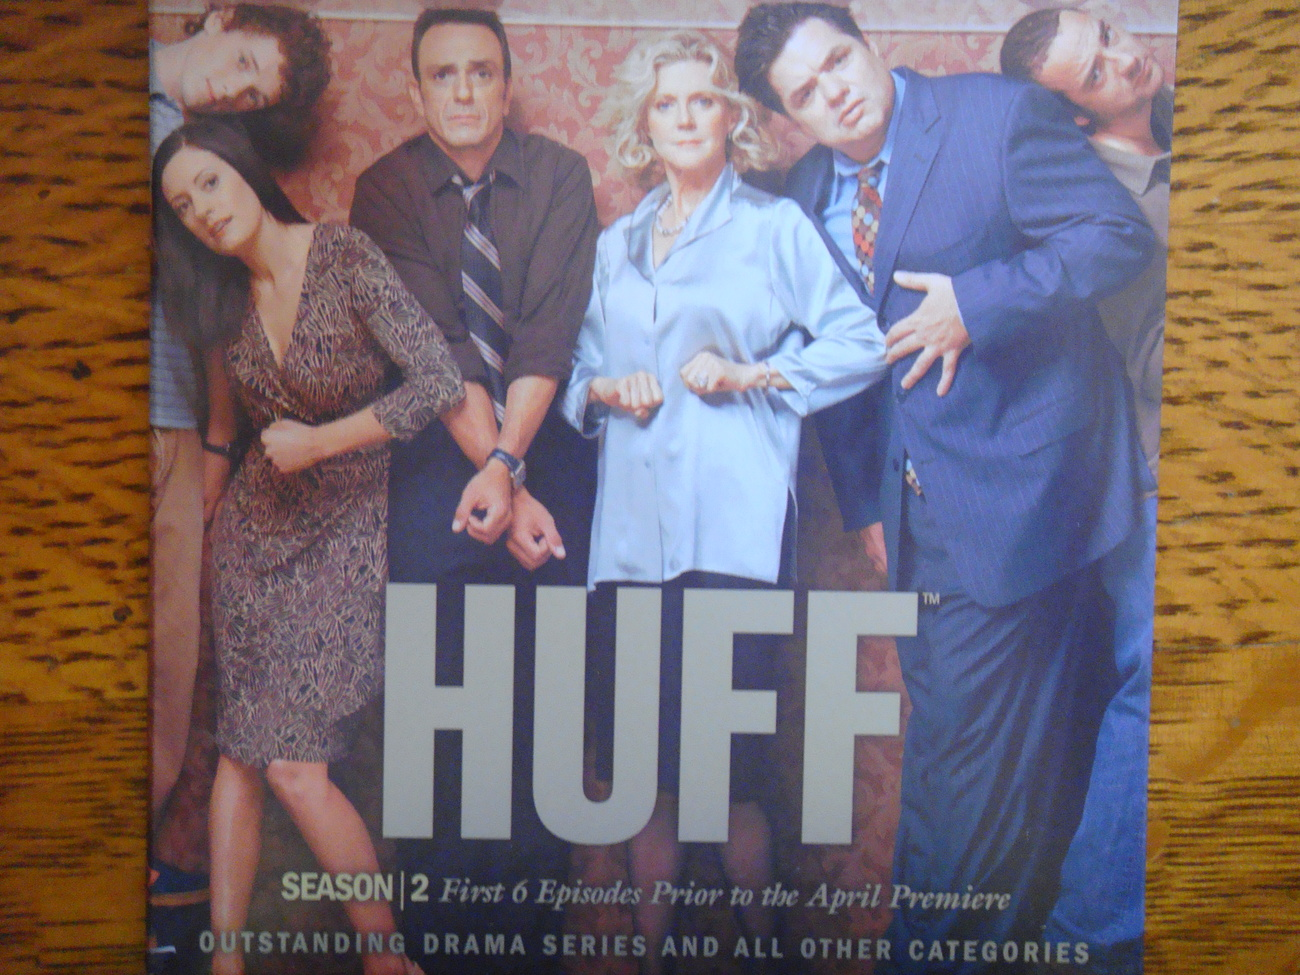 HUFF DVD 6episode SEASON 2 Hank Azaria Showtime emmy dvd